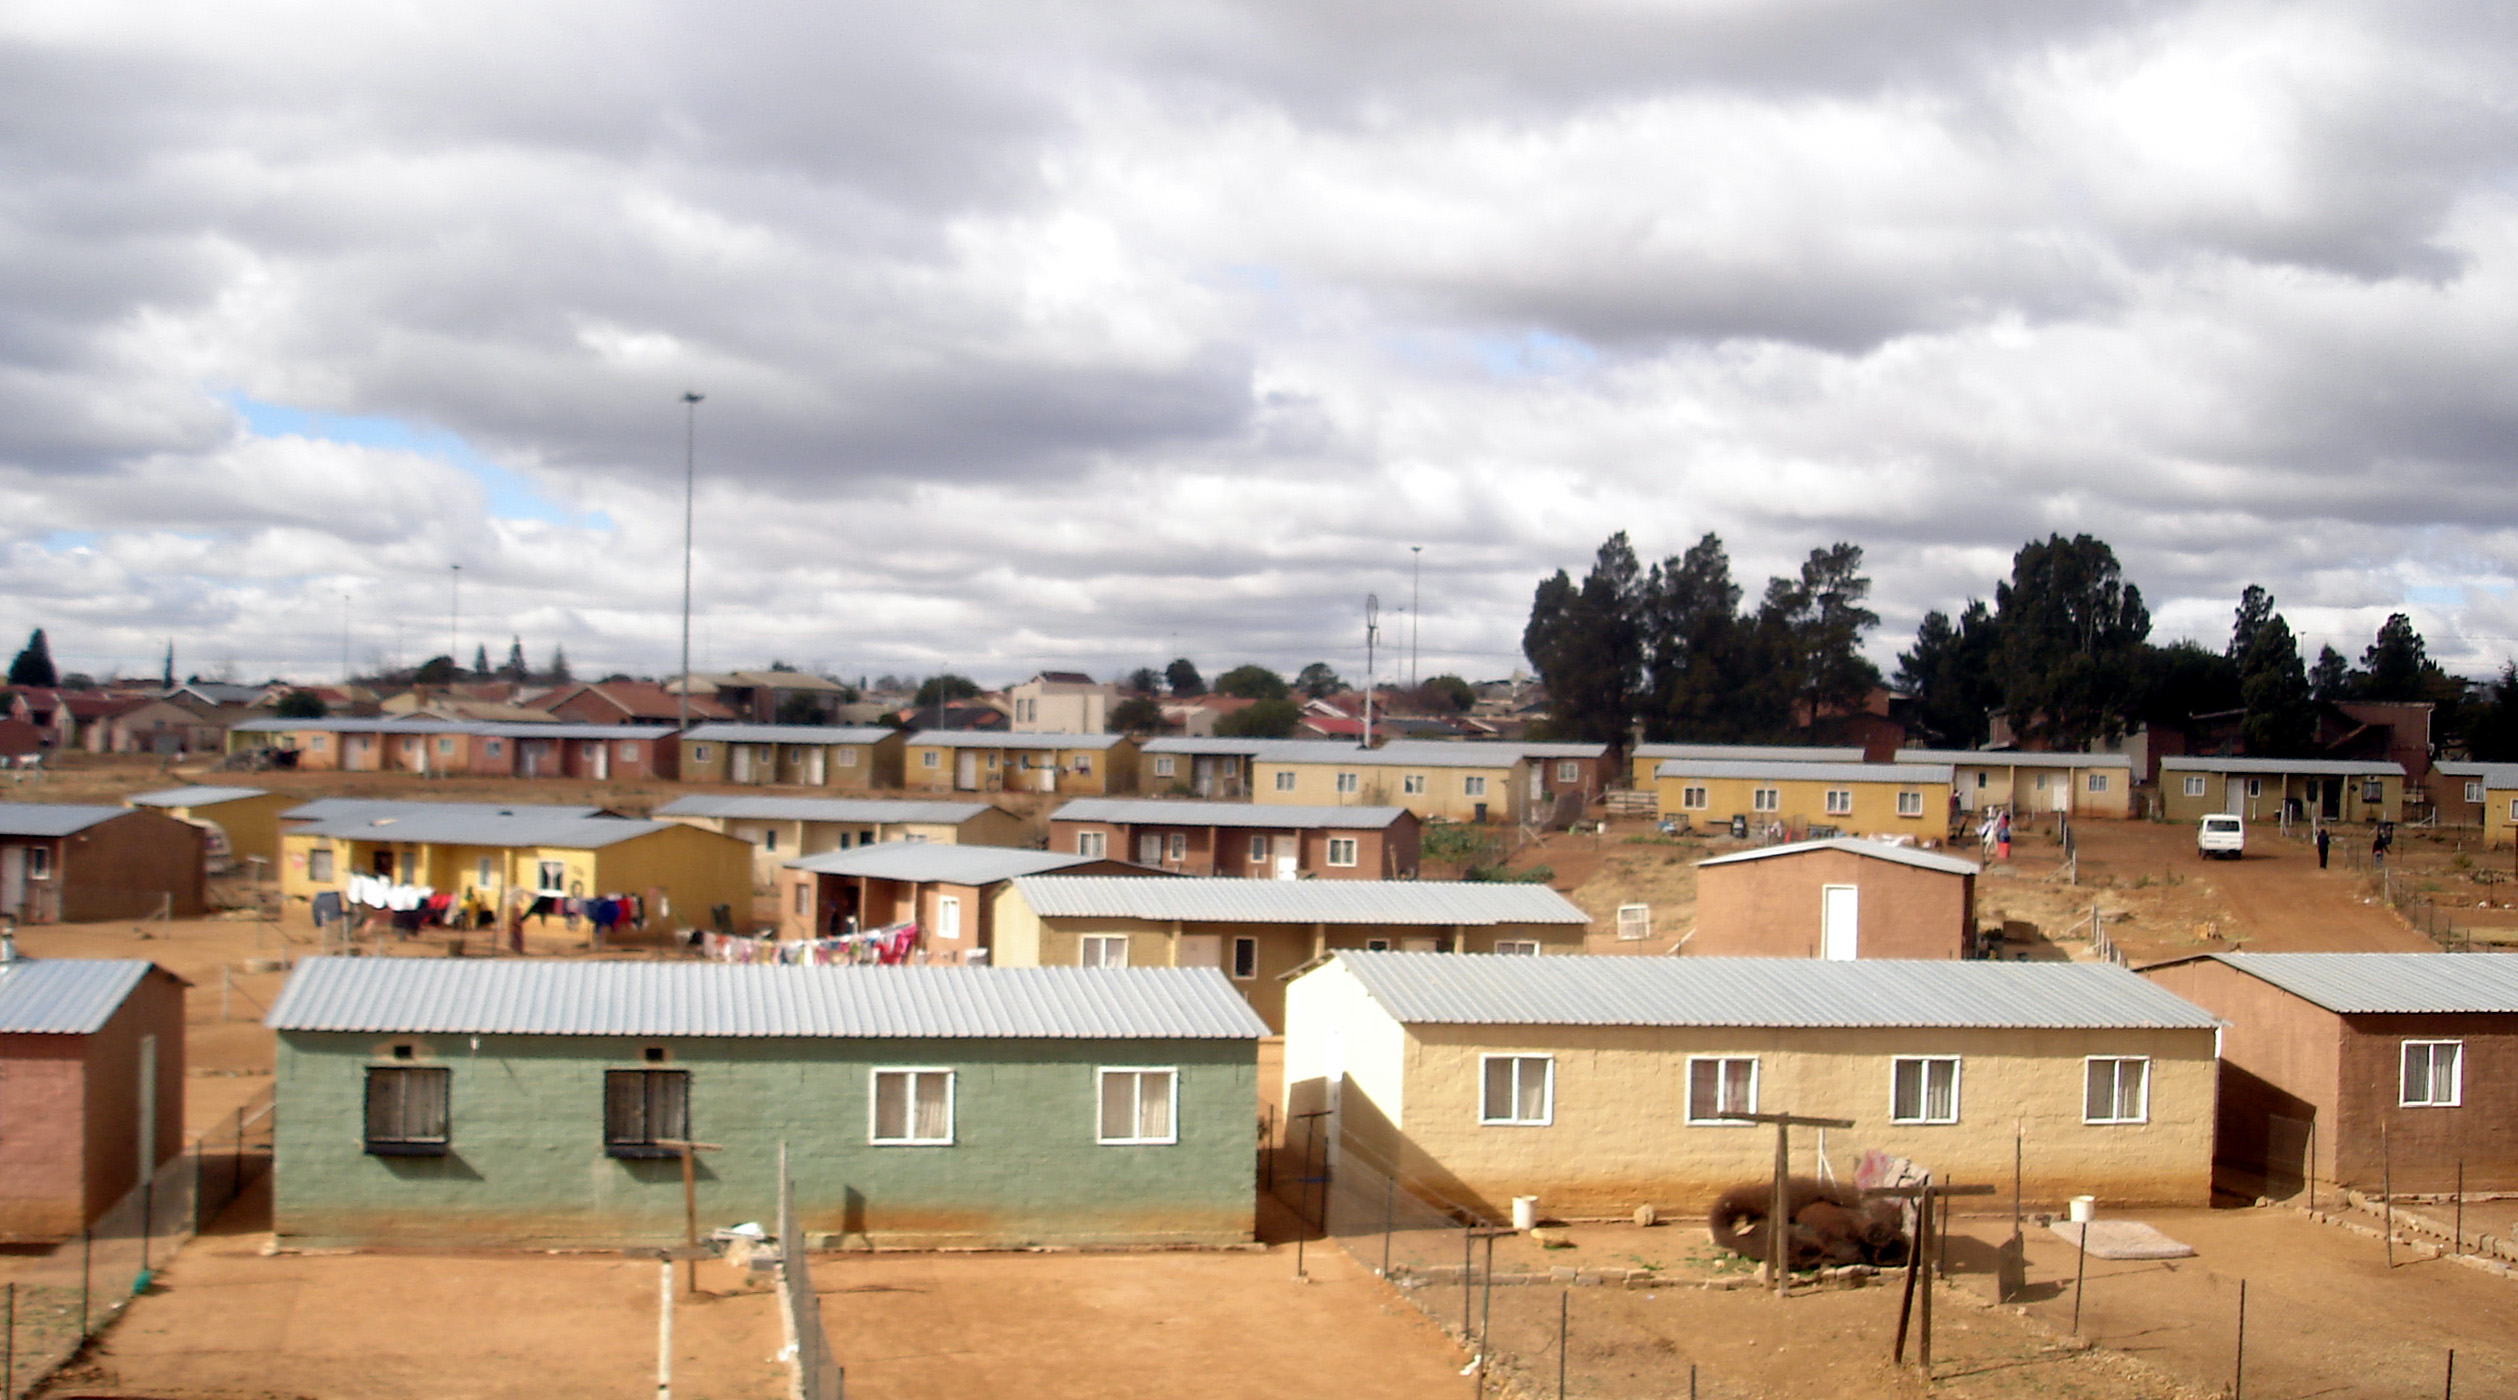 Reconstruction and Development Programme housing in Soweto